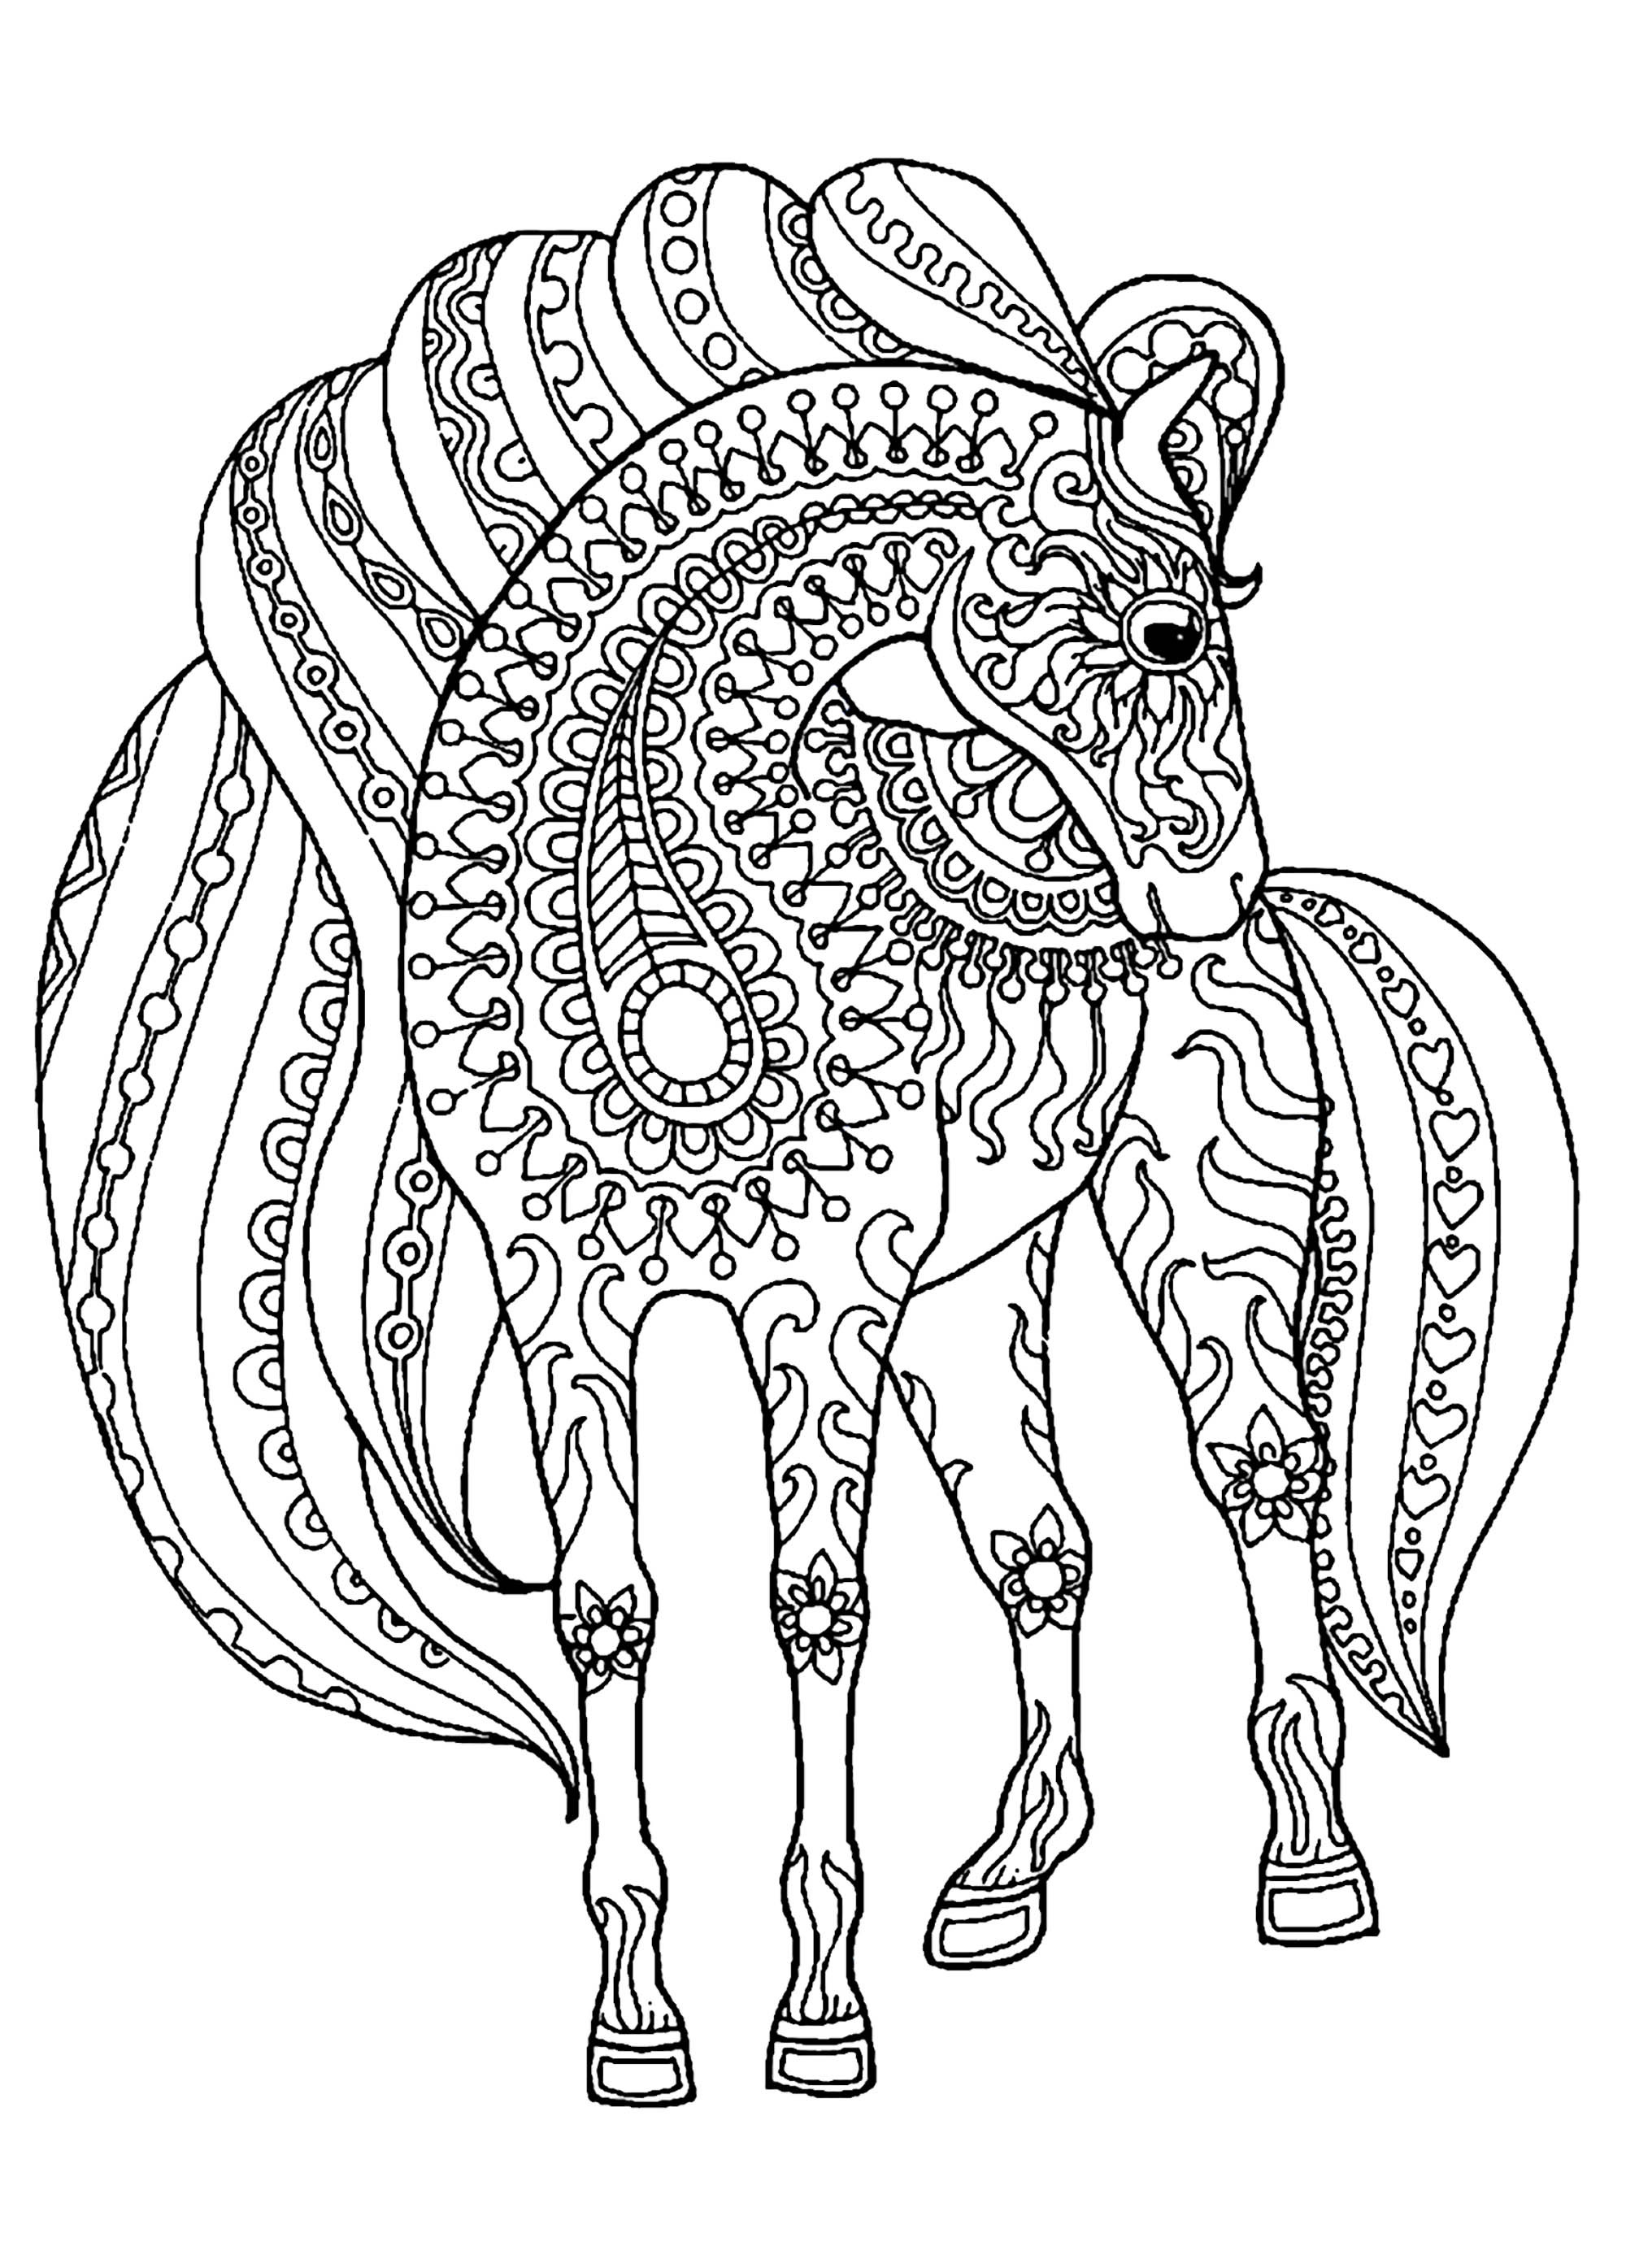 Adult Coloring Pages Horses  Horse simple zentangle patterns Horses Adult Coloring Pages